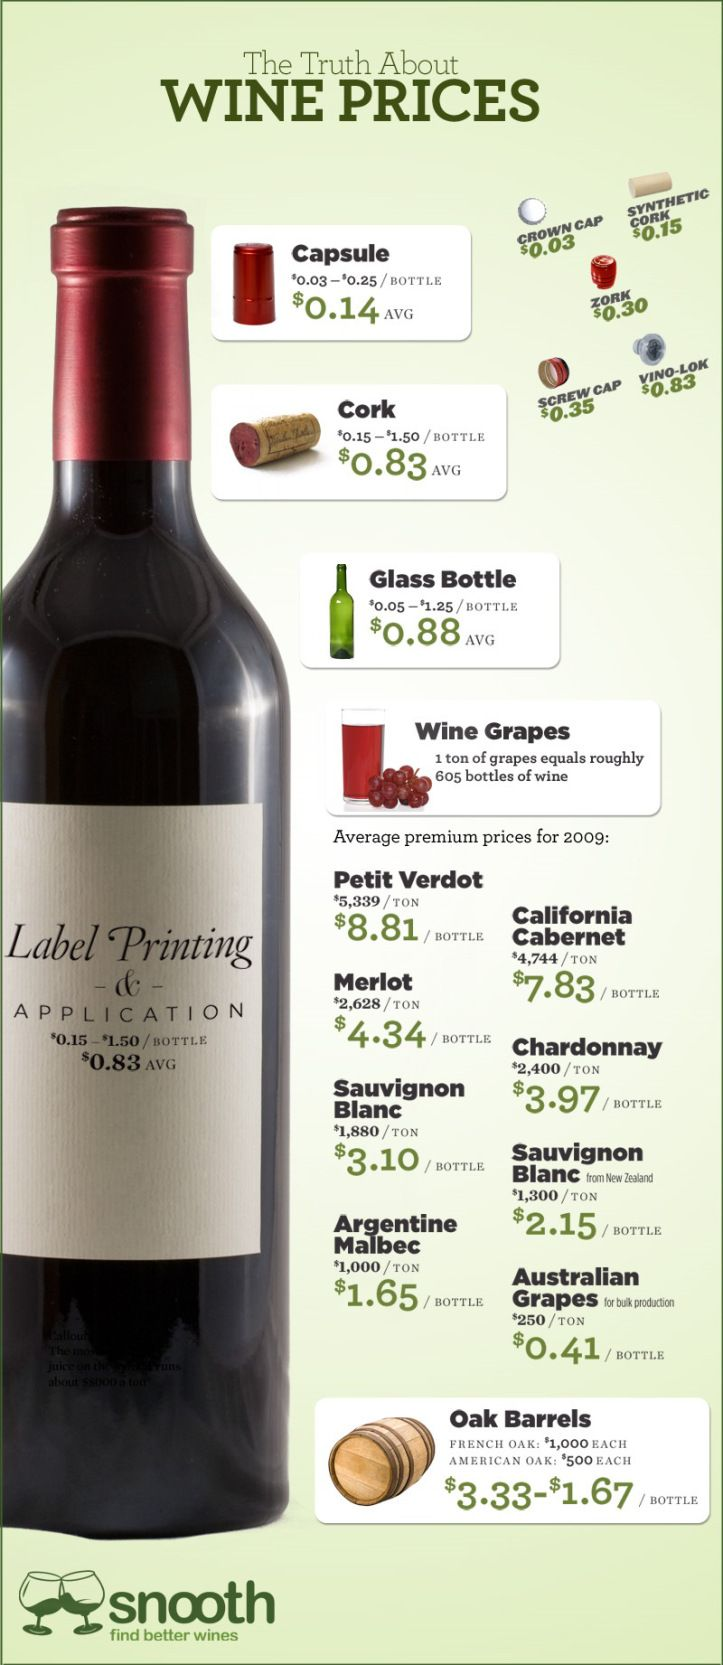 a-truth-about-wine-prices